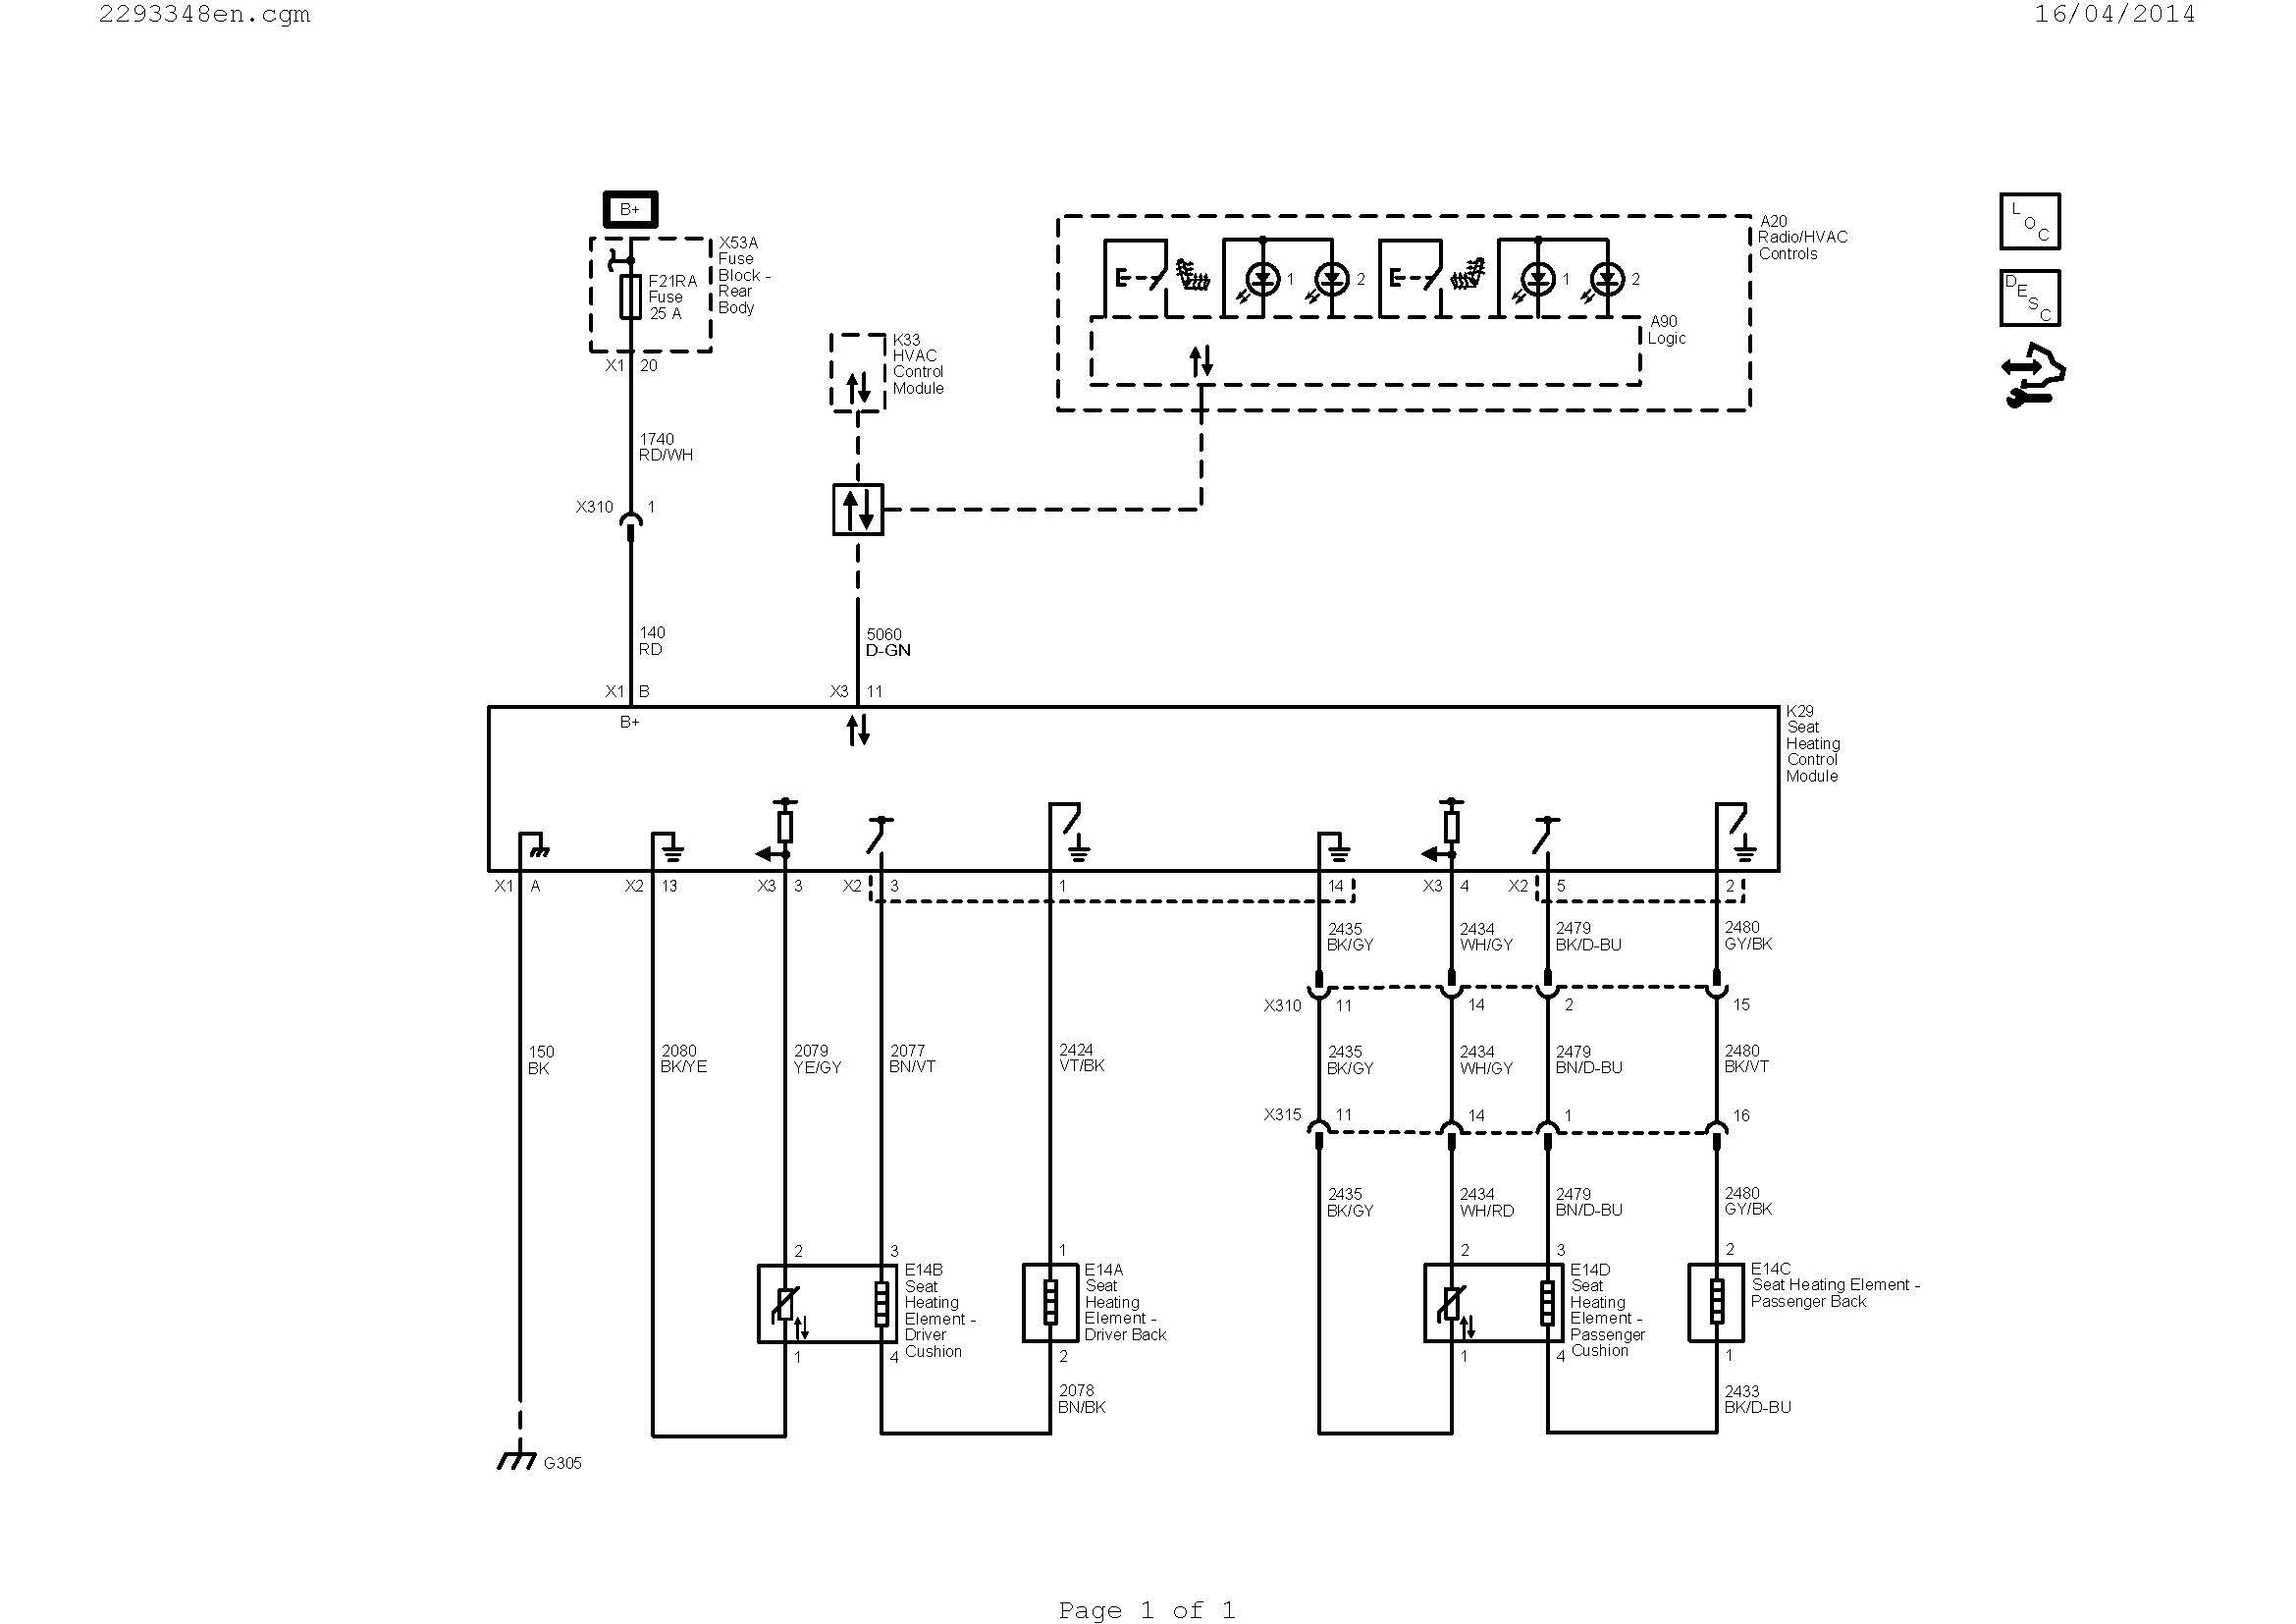 c17 thermostat wiring diagram Download-Air Conditioner thermostat Wiring Diagram Download 1-g